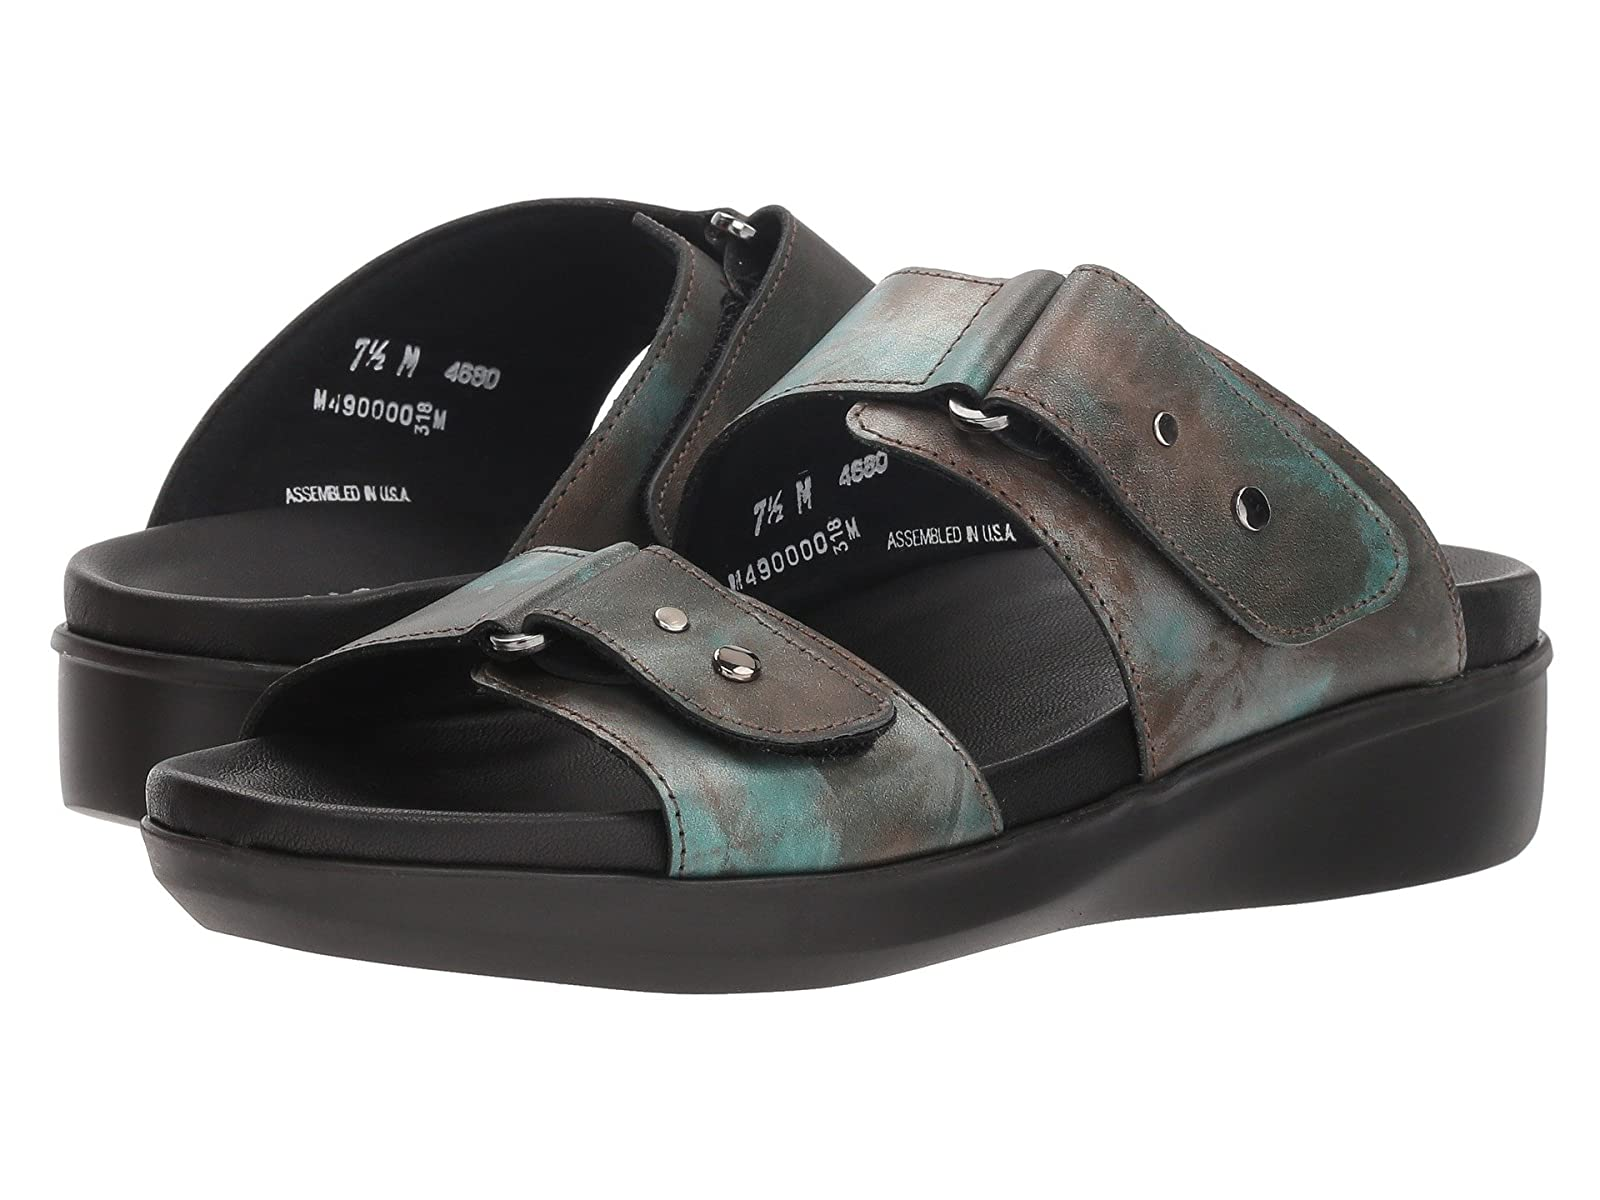 Munro MaclaineAtmospheric grades have affordable shoes